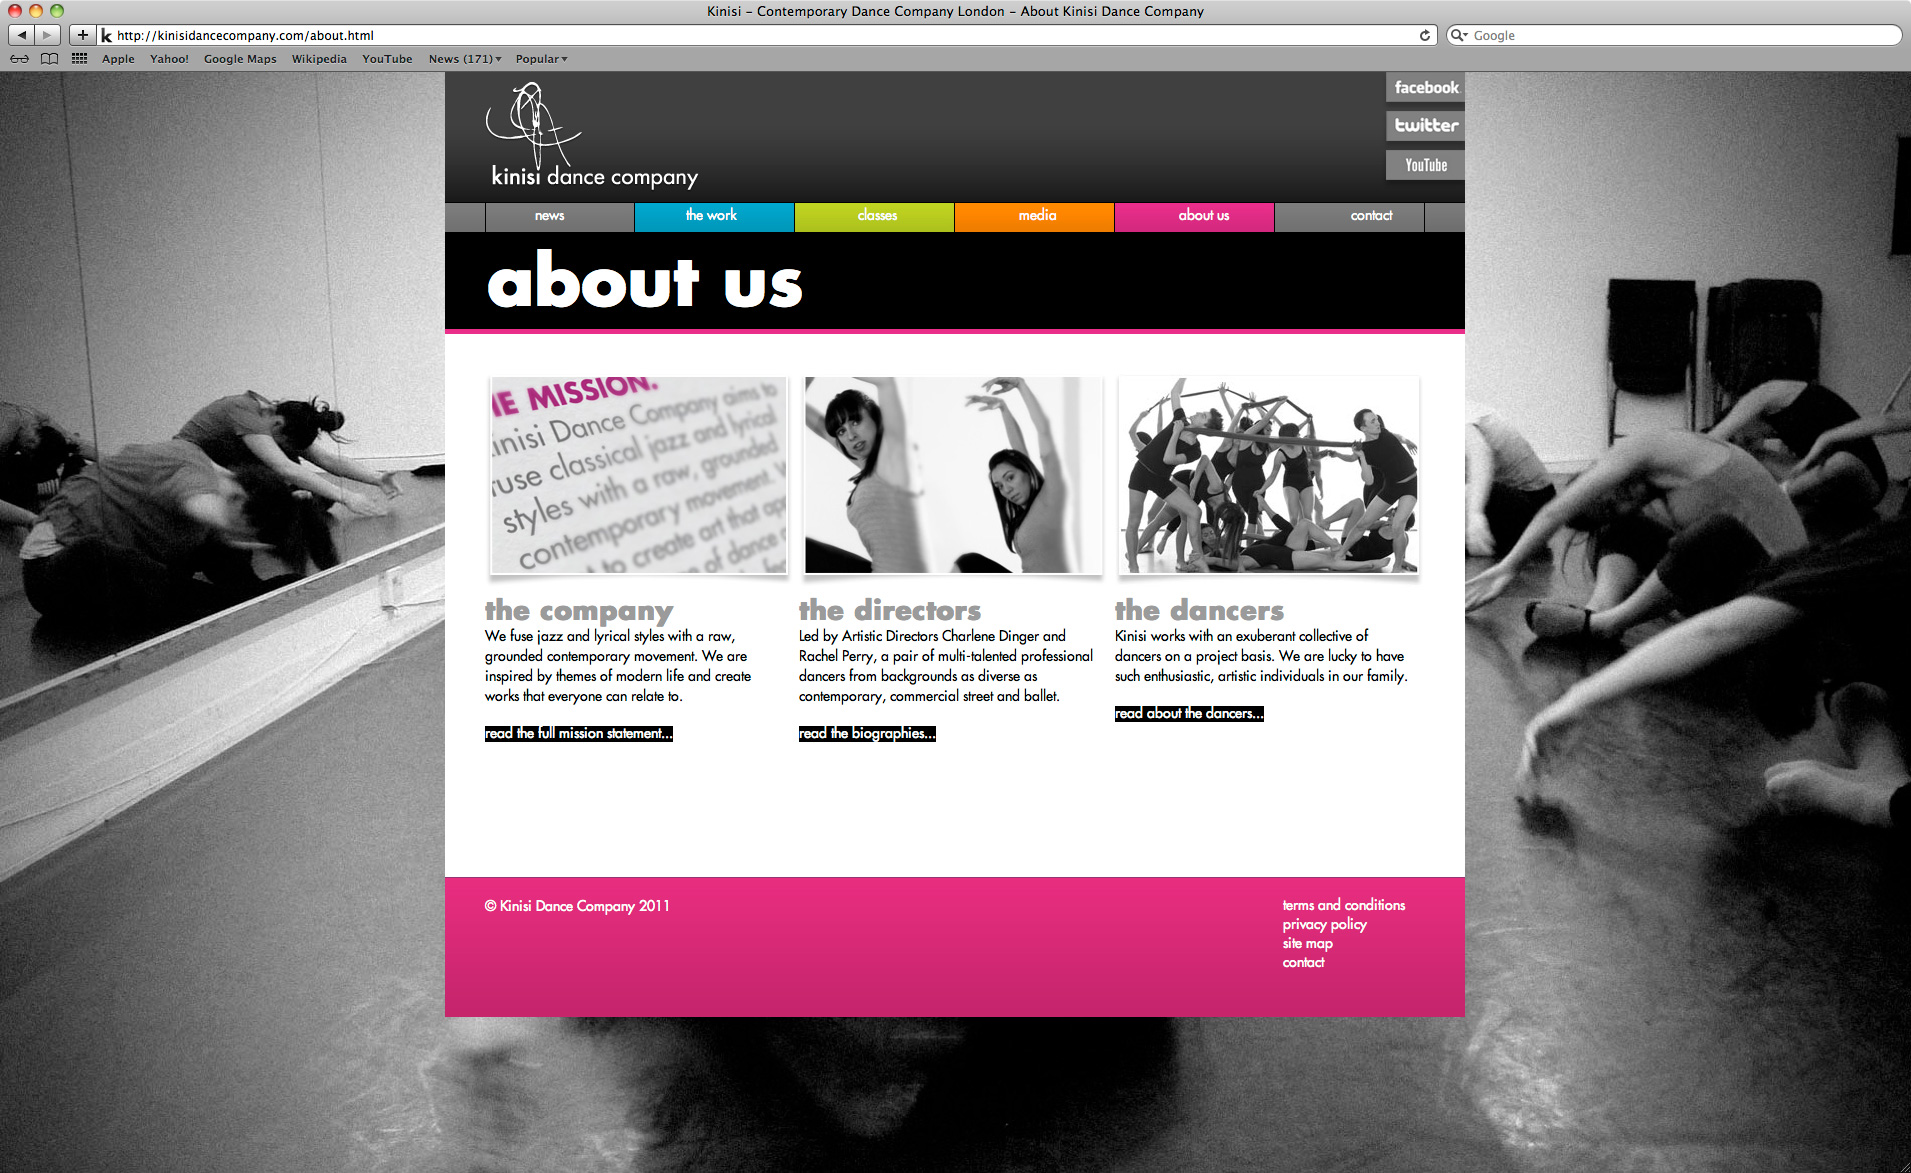 Kinisi Dance Company Website - About Us Page